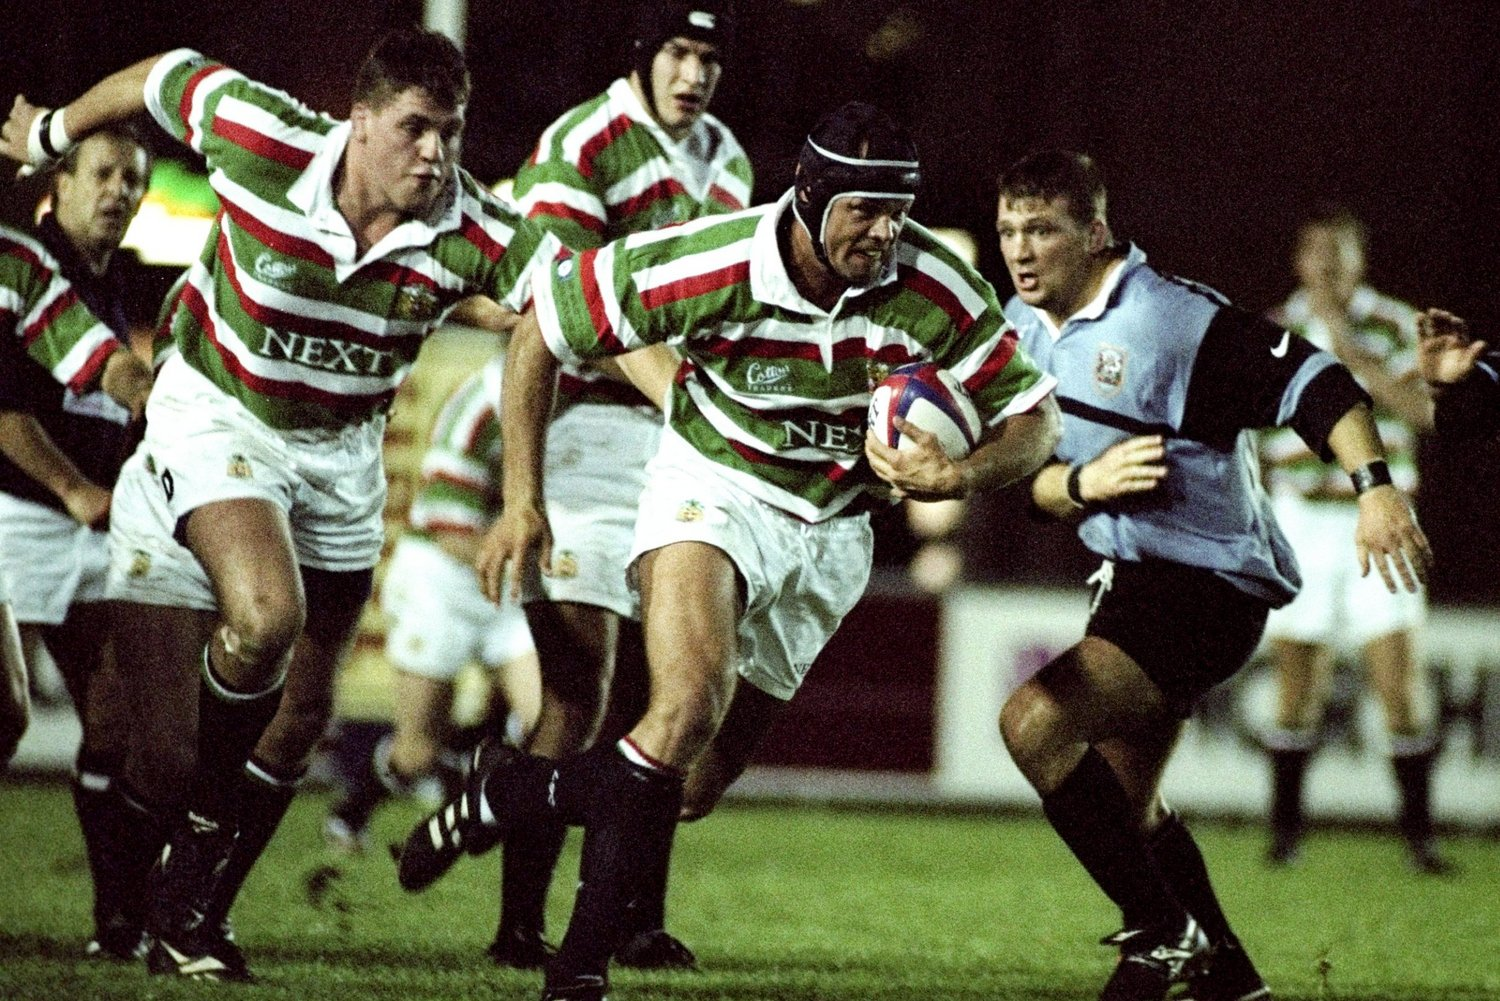 Captains Collection 1997 player